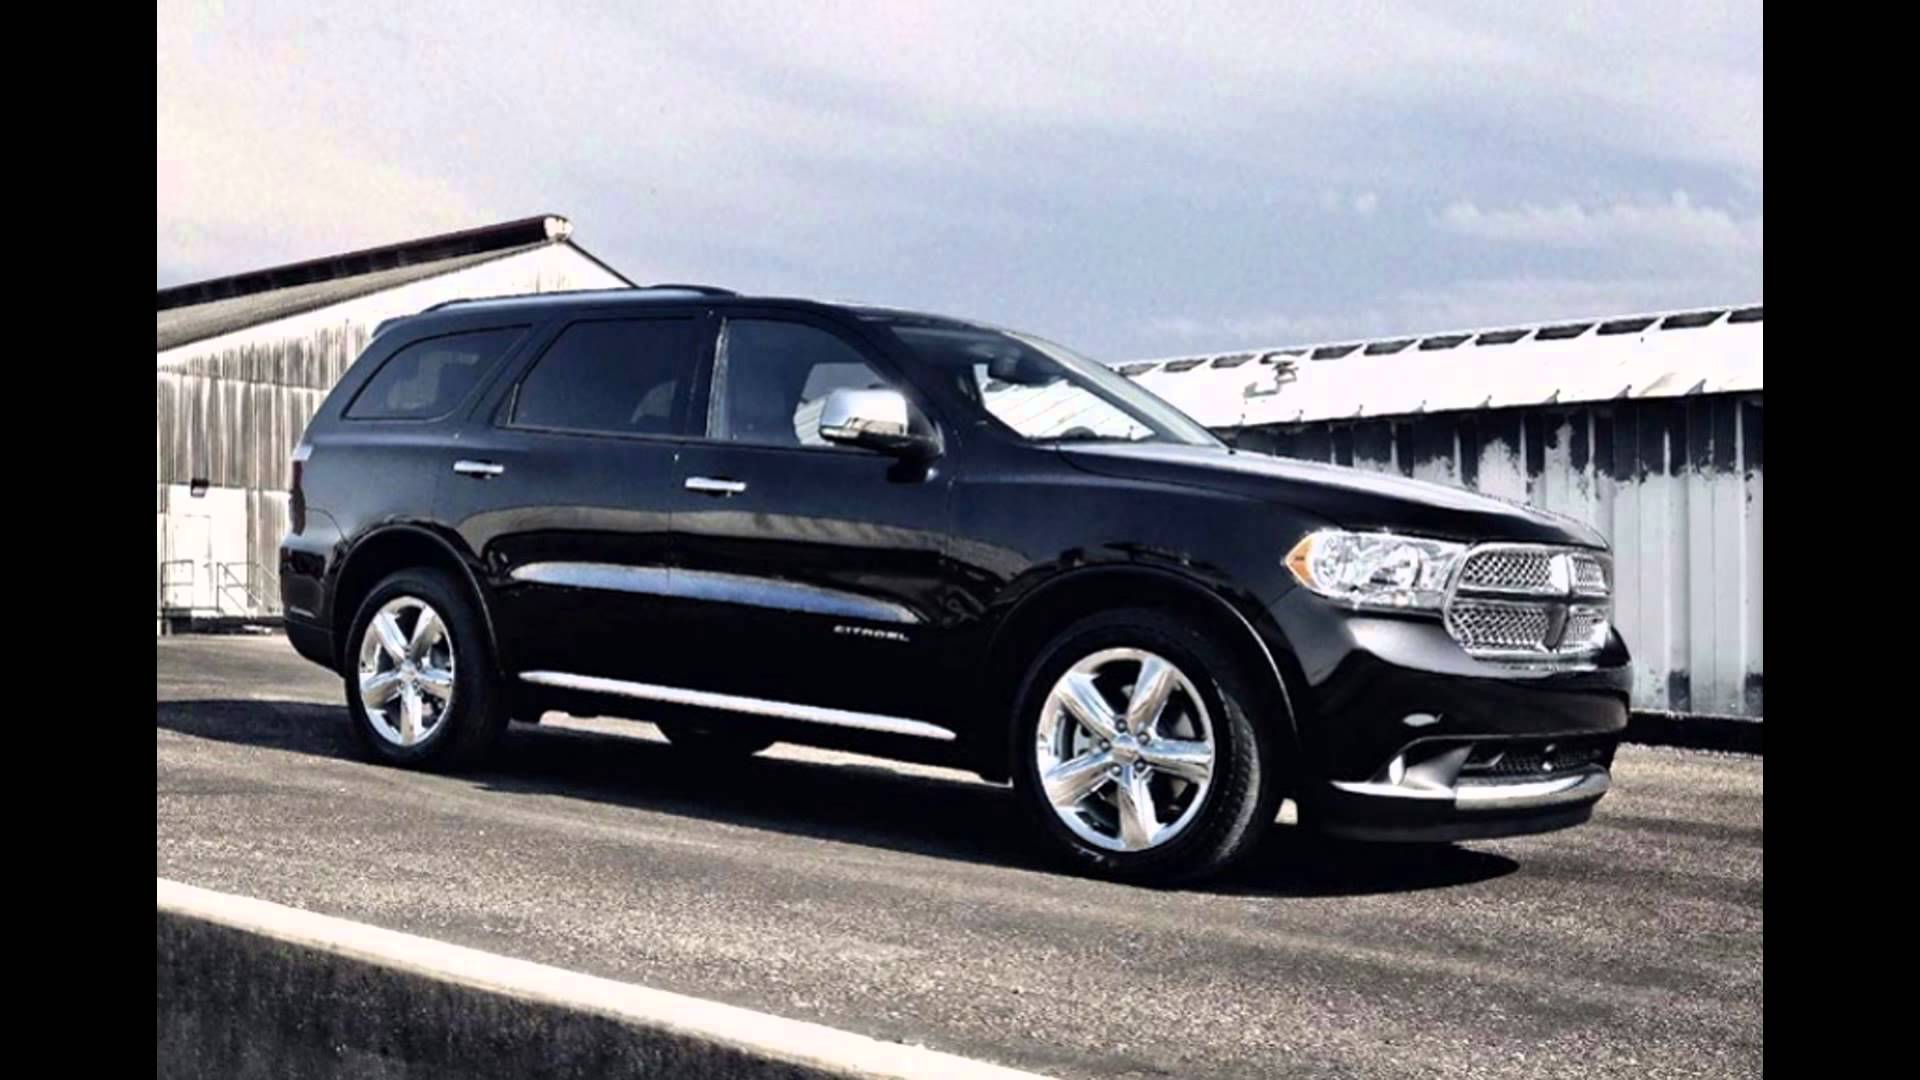 best reviews of suv cars for sale near me with cheap price from many countries